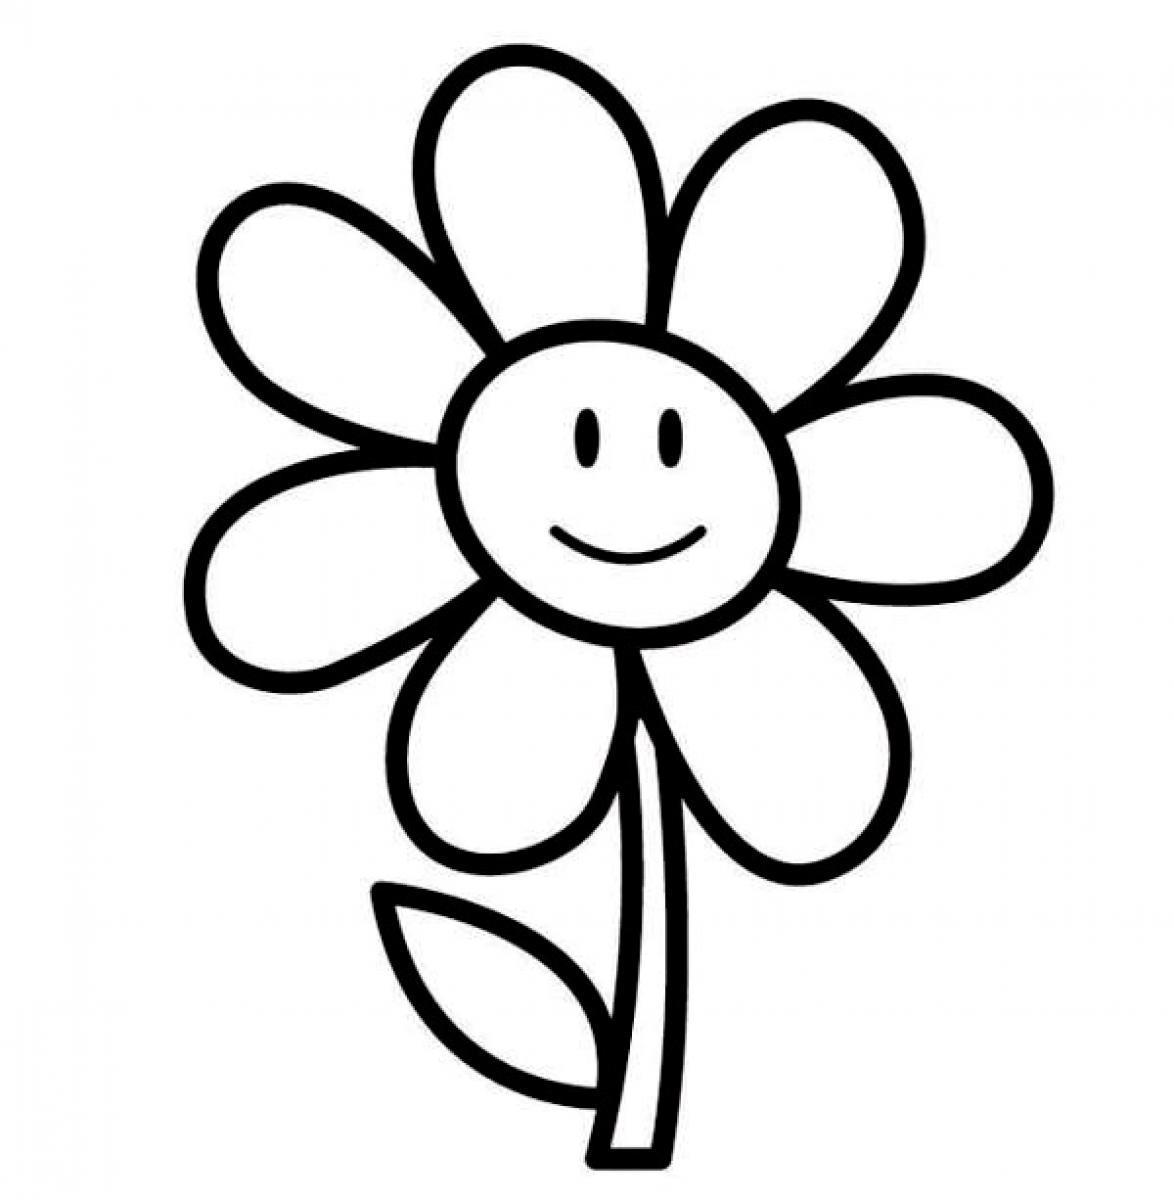 1174x1200 Best Easy Coloring Pages Printable Pics Of Basic Flower Popular